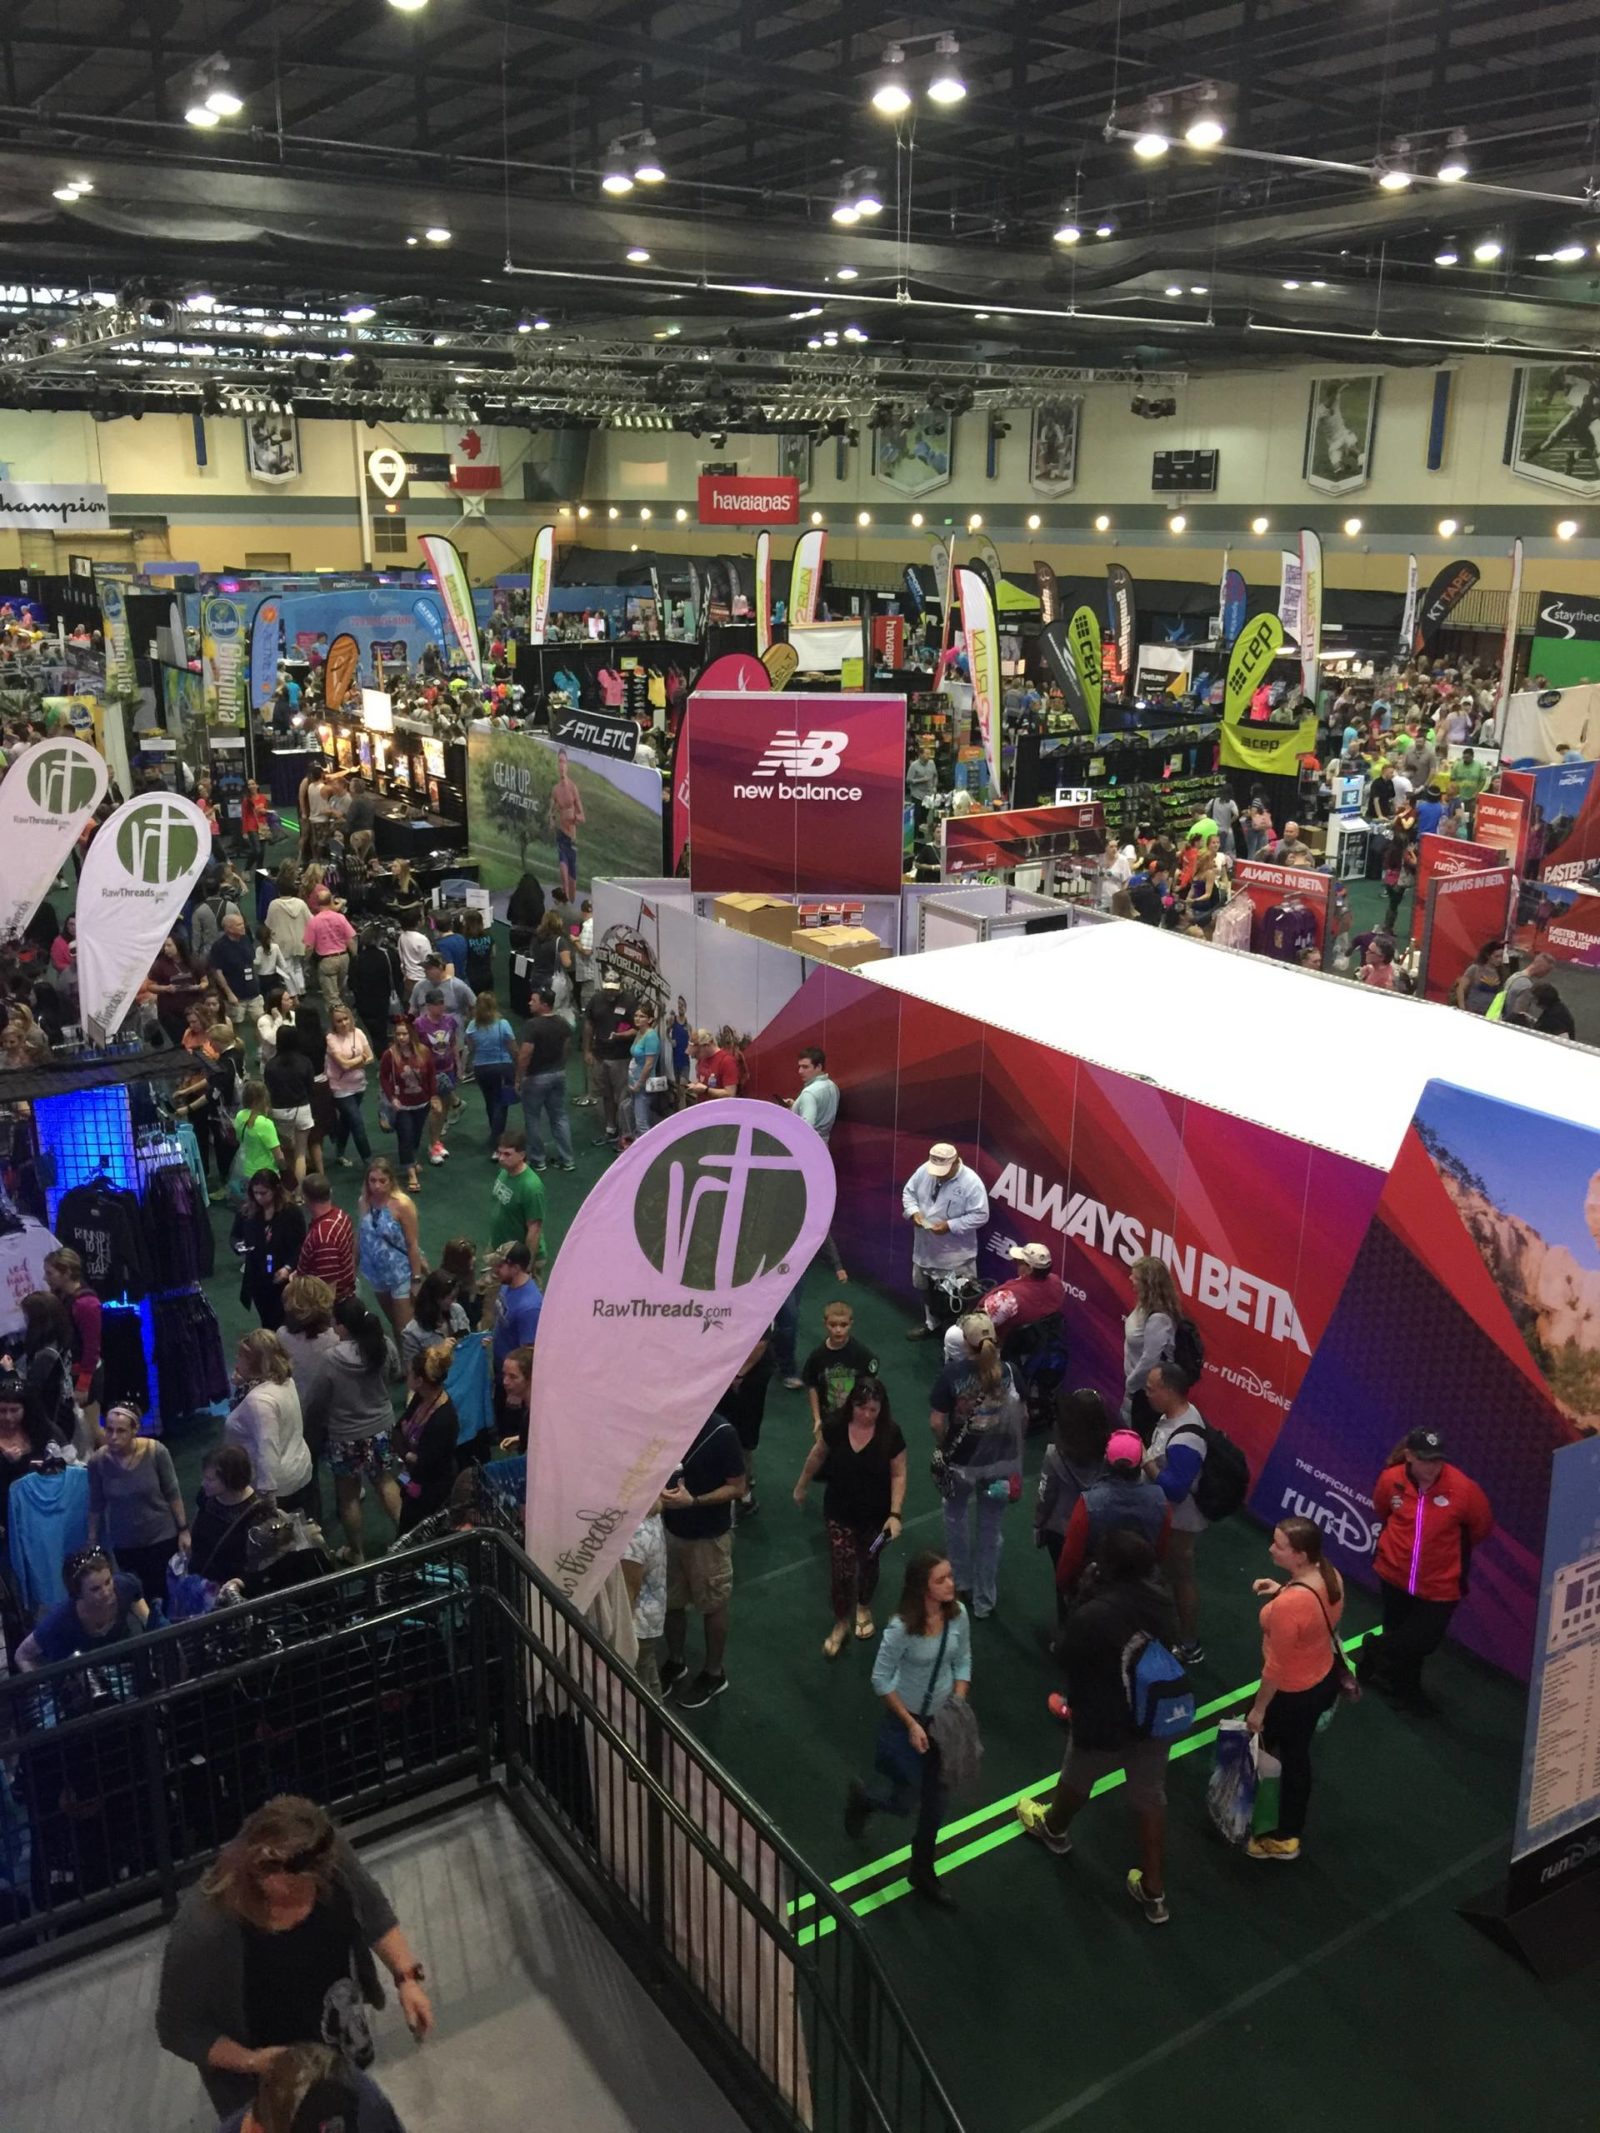 disney princess half marathon expo